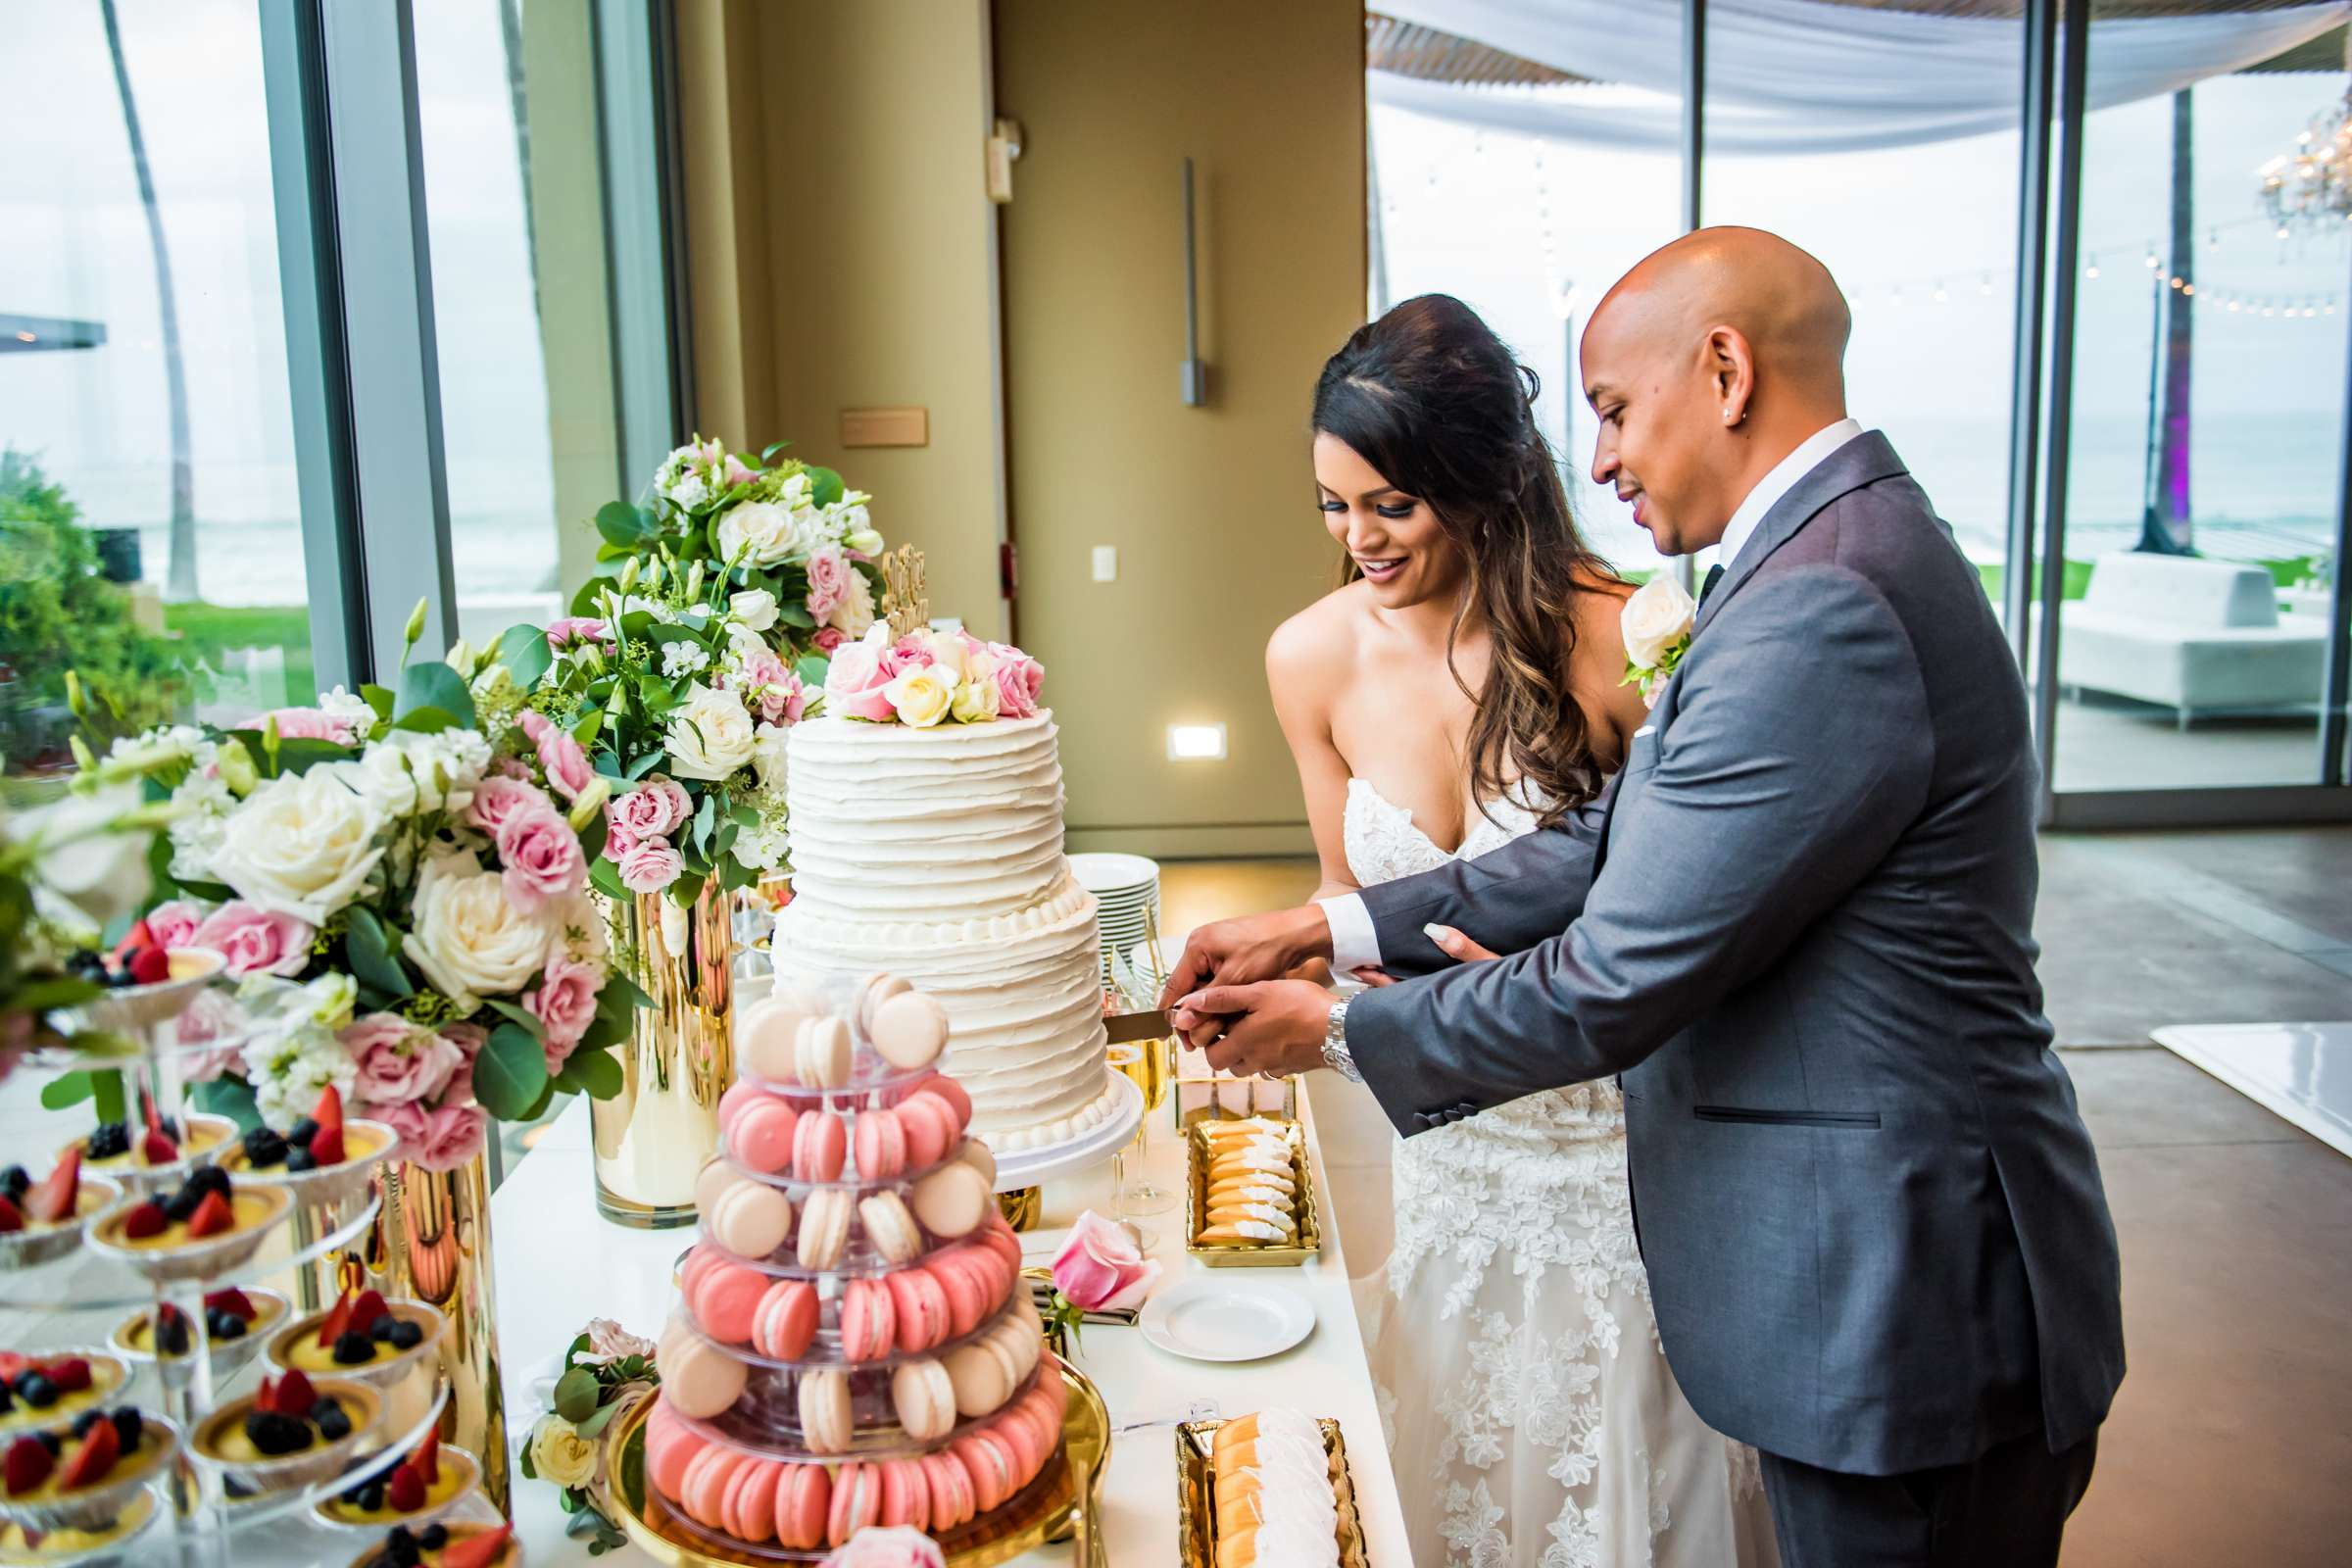 Scripps Seaside Forum Wedding coordinated by Lavish Weddings, Cindy and Justin Wedding Photo #381863 by True Photography